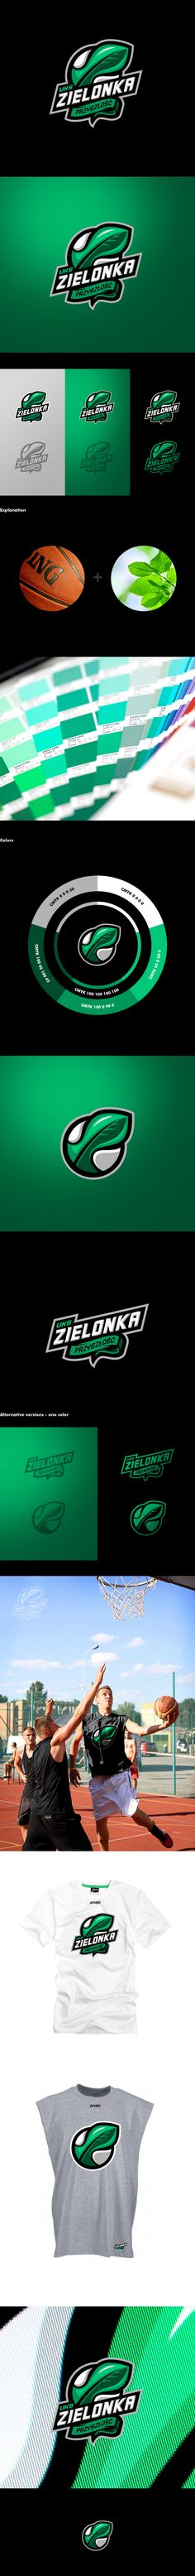 UKS Zielonka Przyszłość on Behance  A logo prepared for the basketball team from Poland whose coach is former NBA player Michael Ansley.